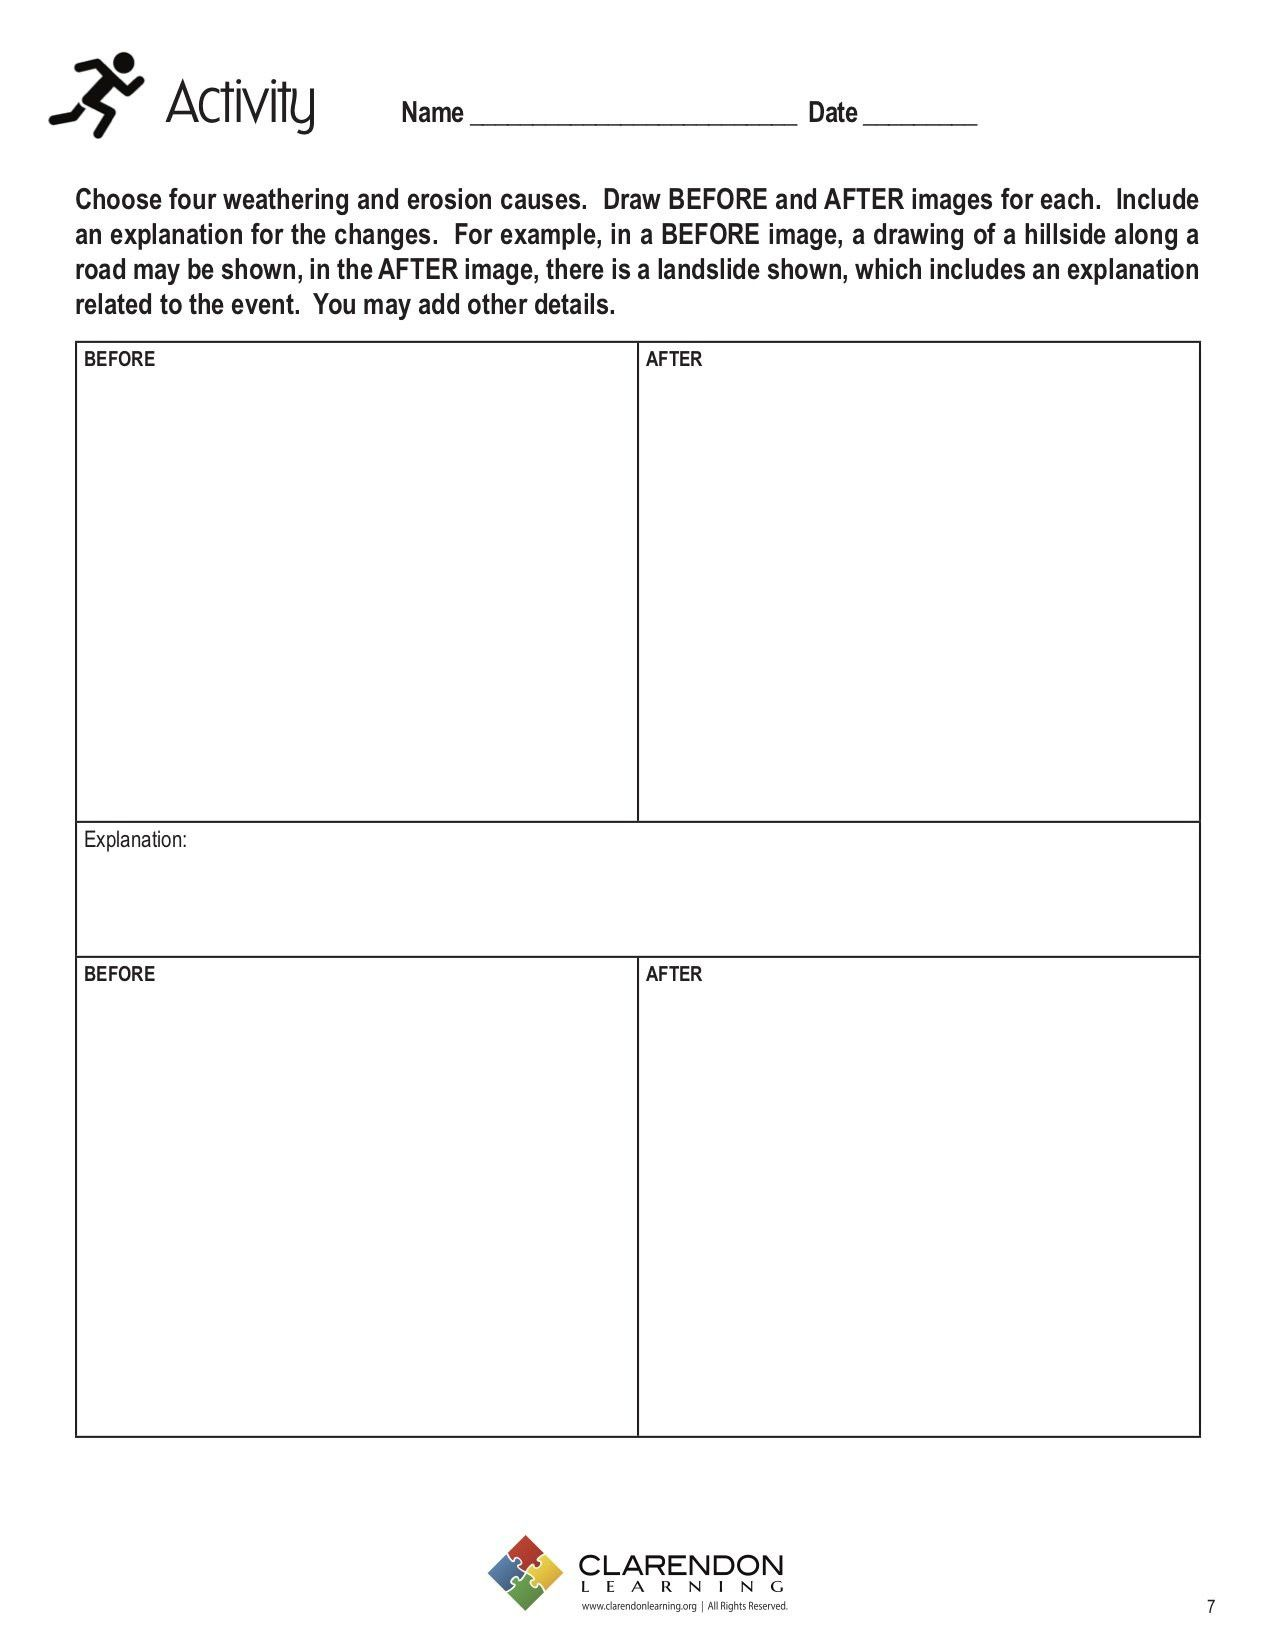 Weathering And Erosion Worksheets For Third Grade   Printable Worksheets  and Activities for Teachers [ 1650 x 1275 Pixel ]